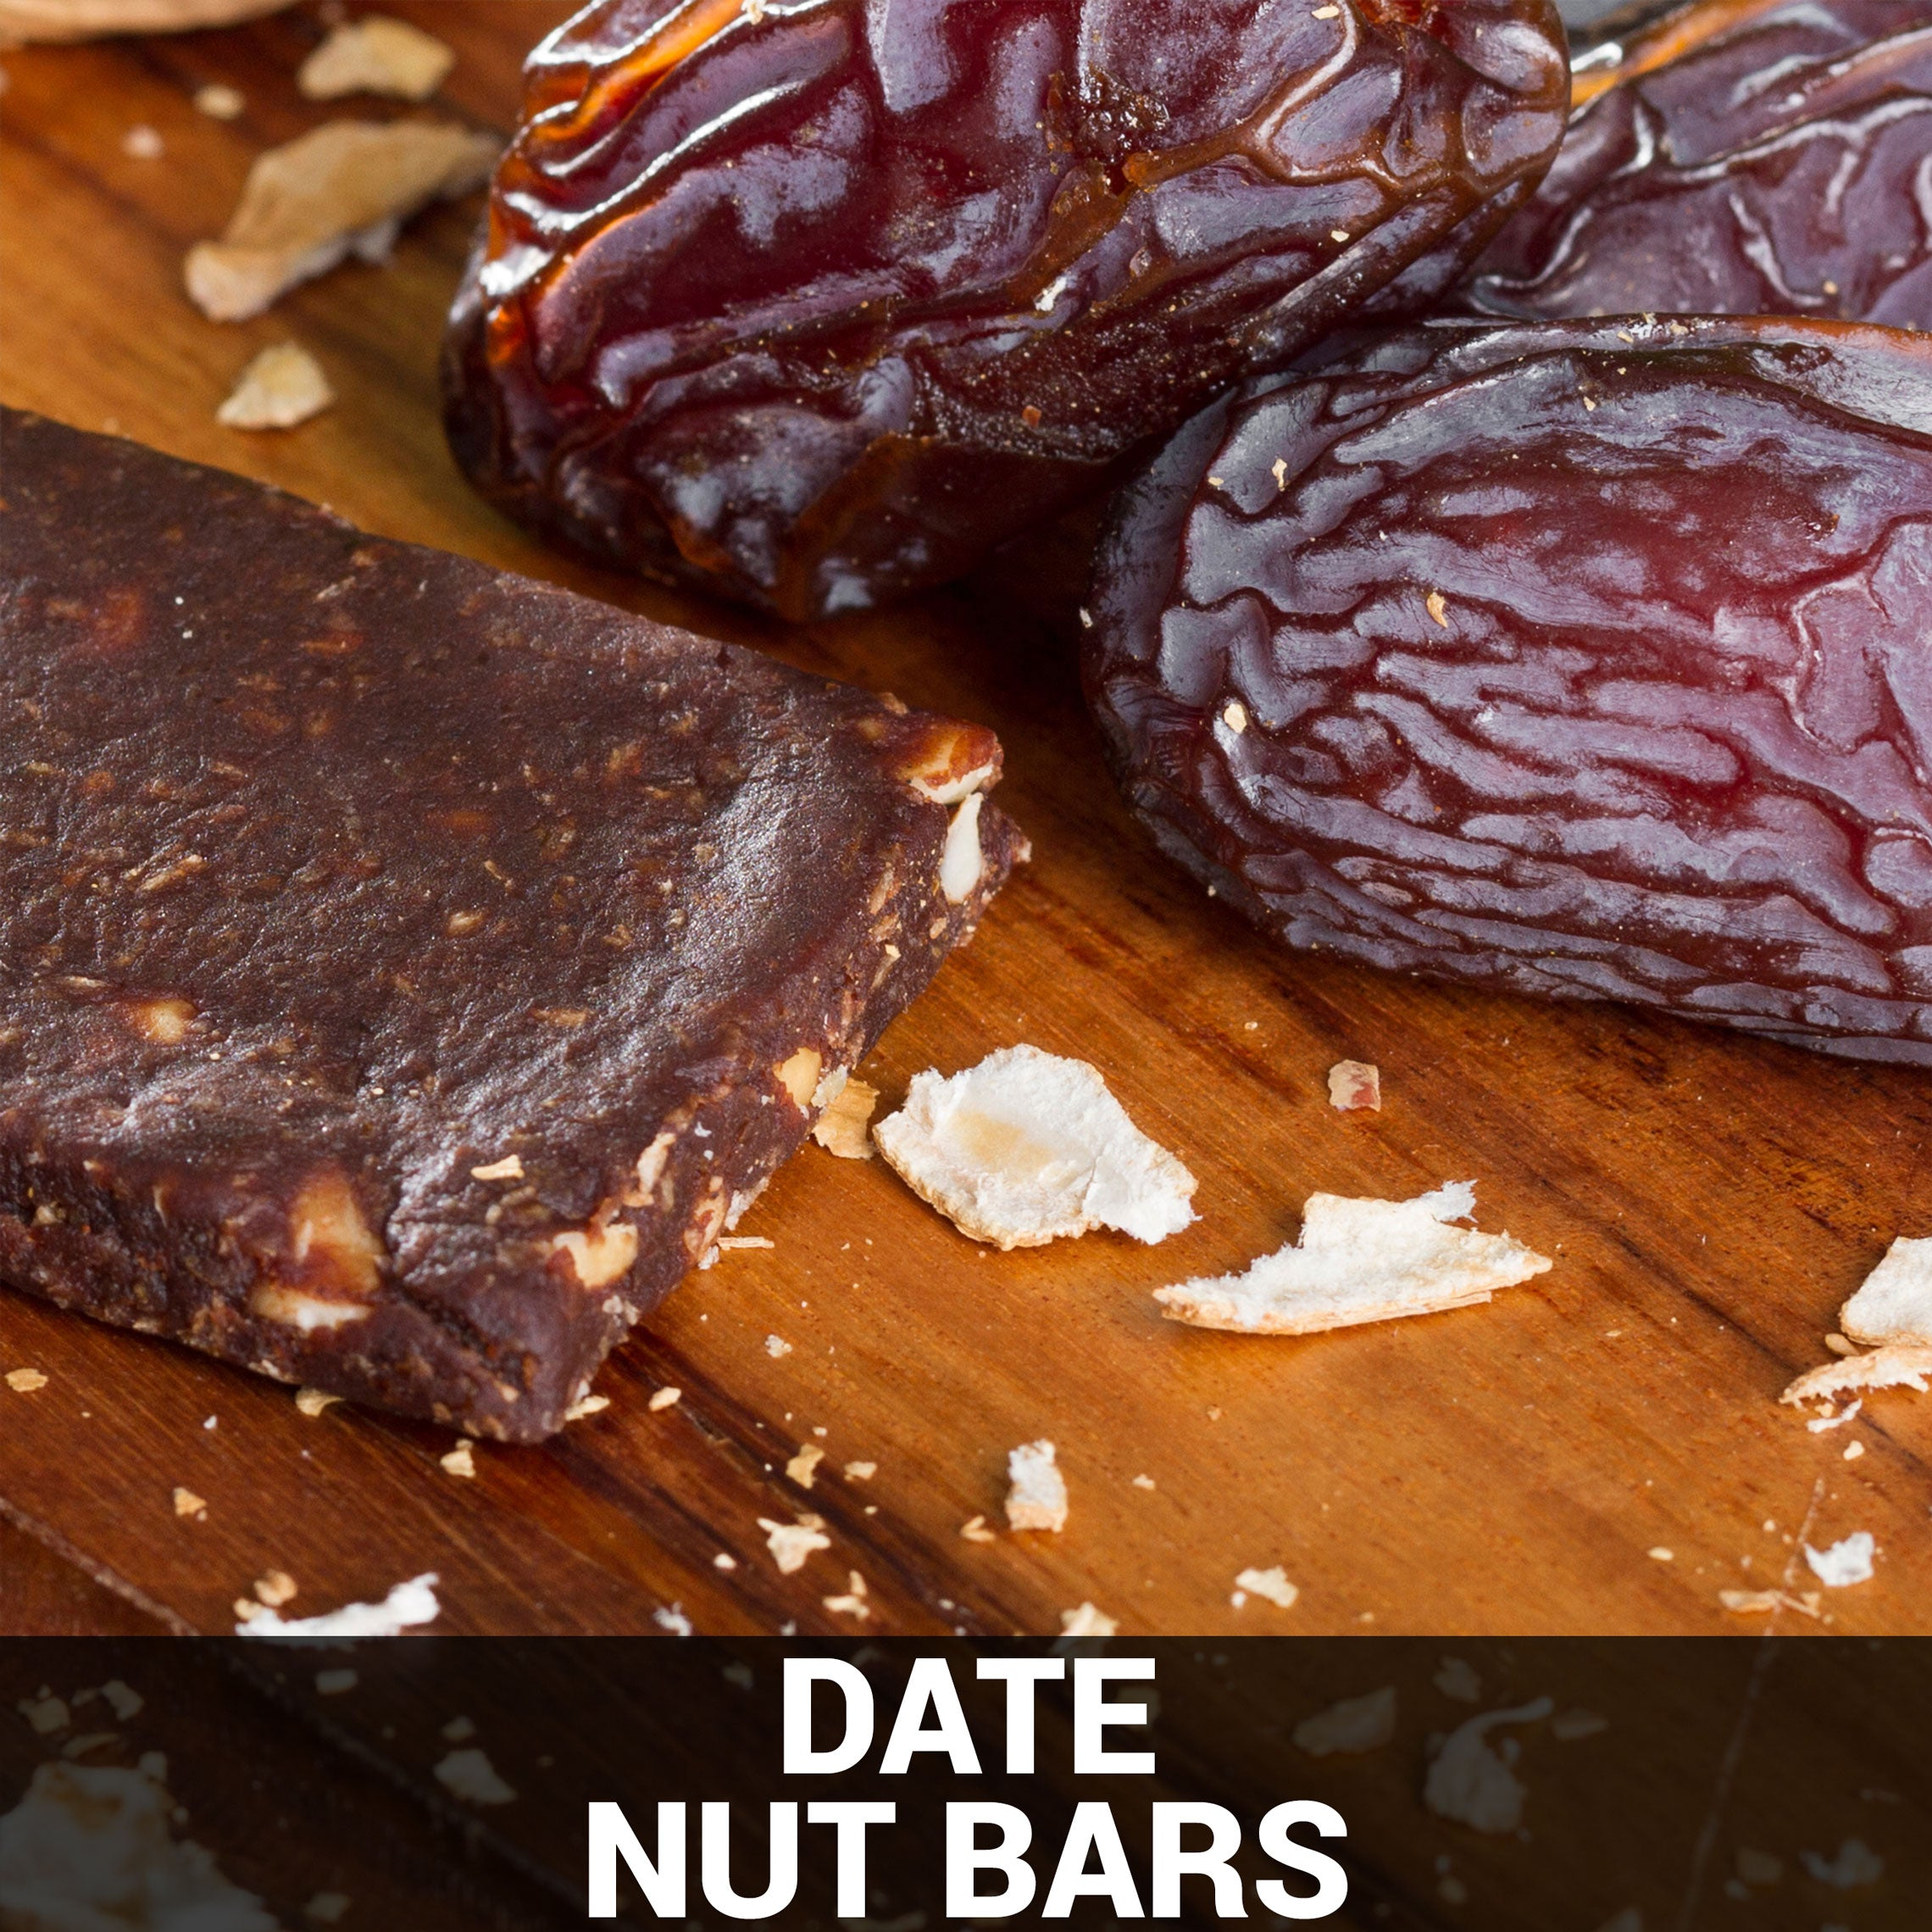 Date Nut Bars Recipe - Foods Alive